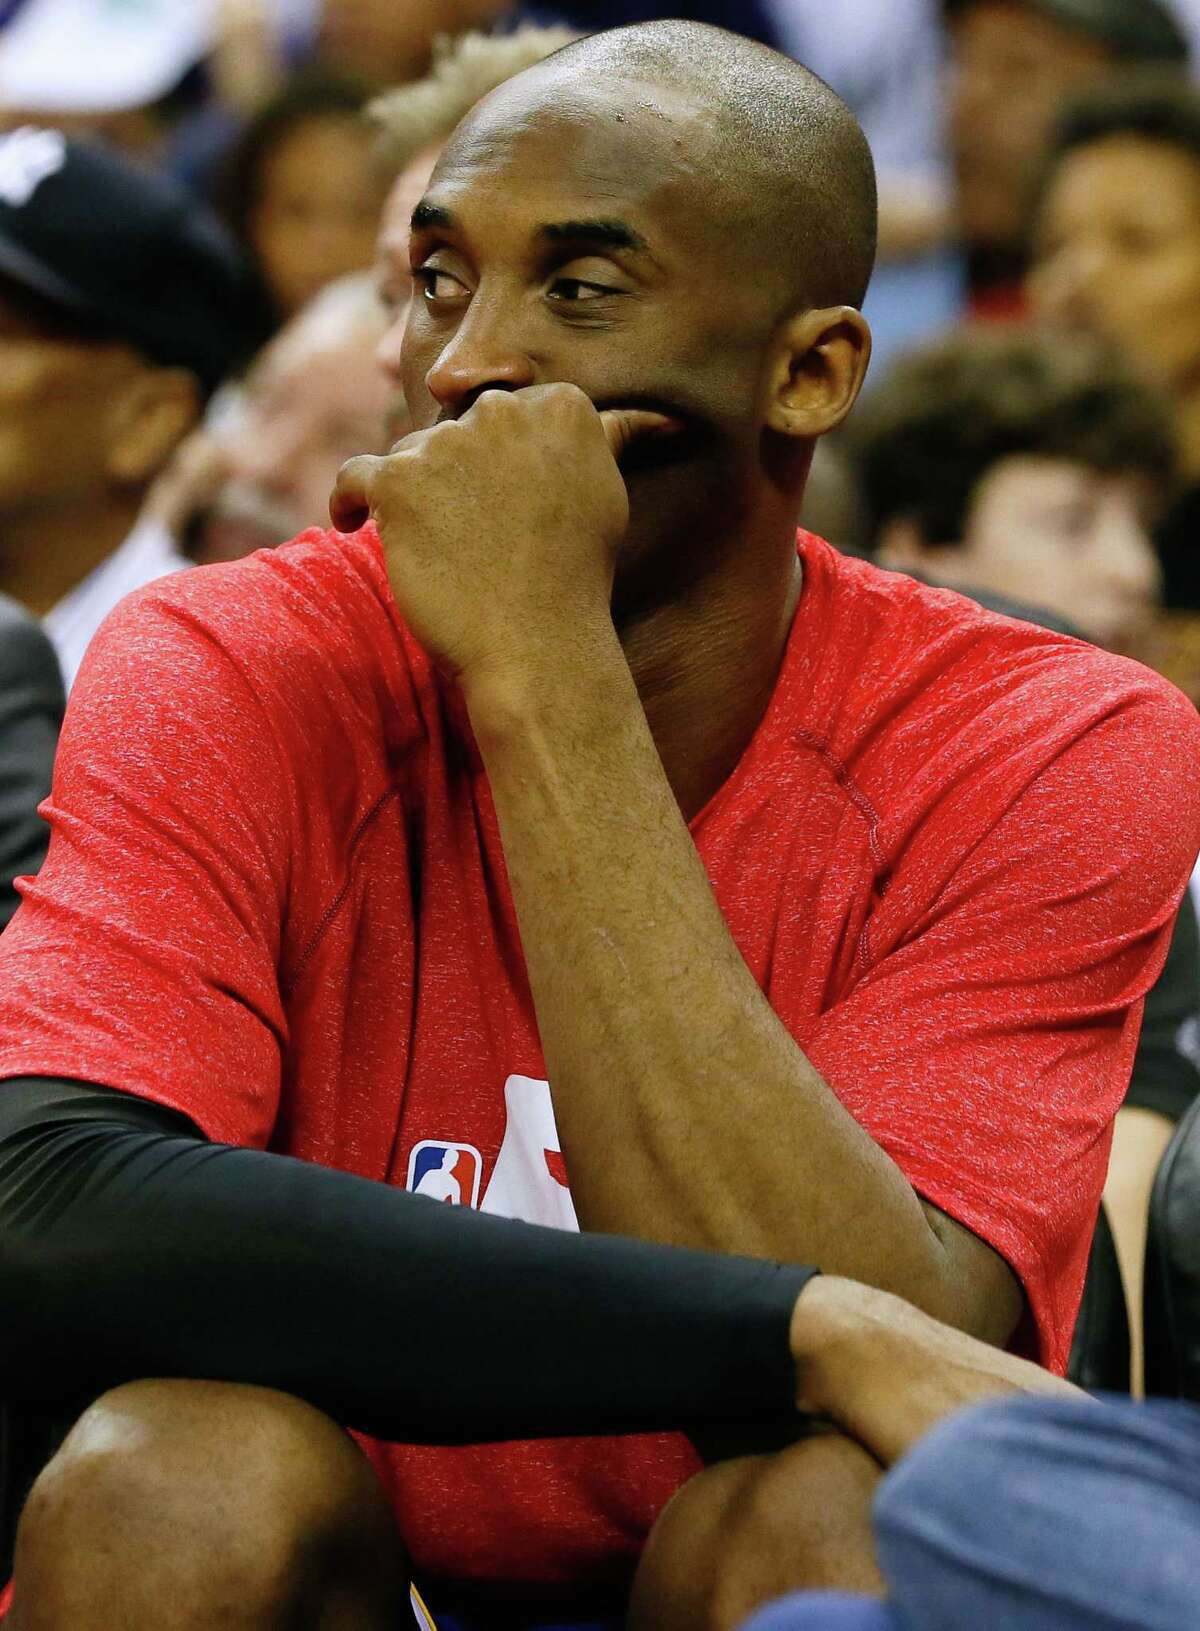 Los Angeles Lakers guard Kobe Bryant reacts from the bench during the first half of a game against the Pelicans on Wednesday in New Orleans.